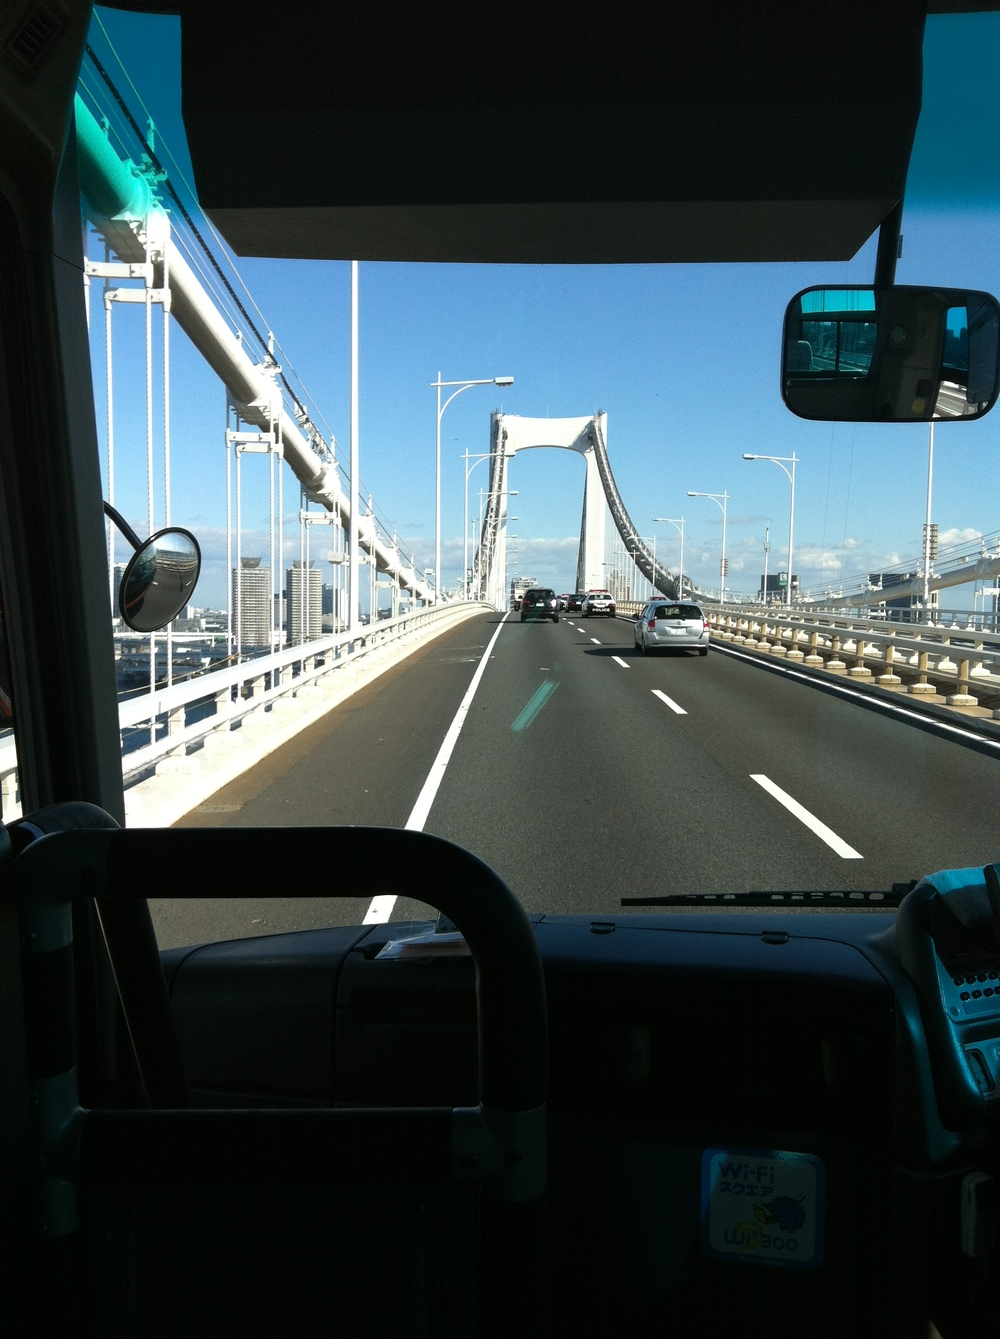 On the way to Narita Airport